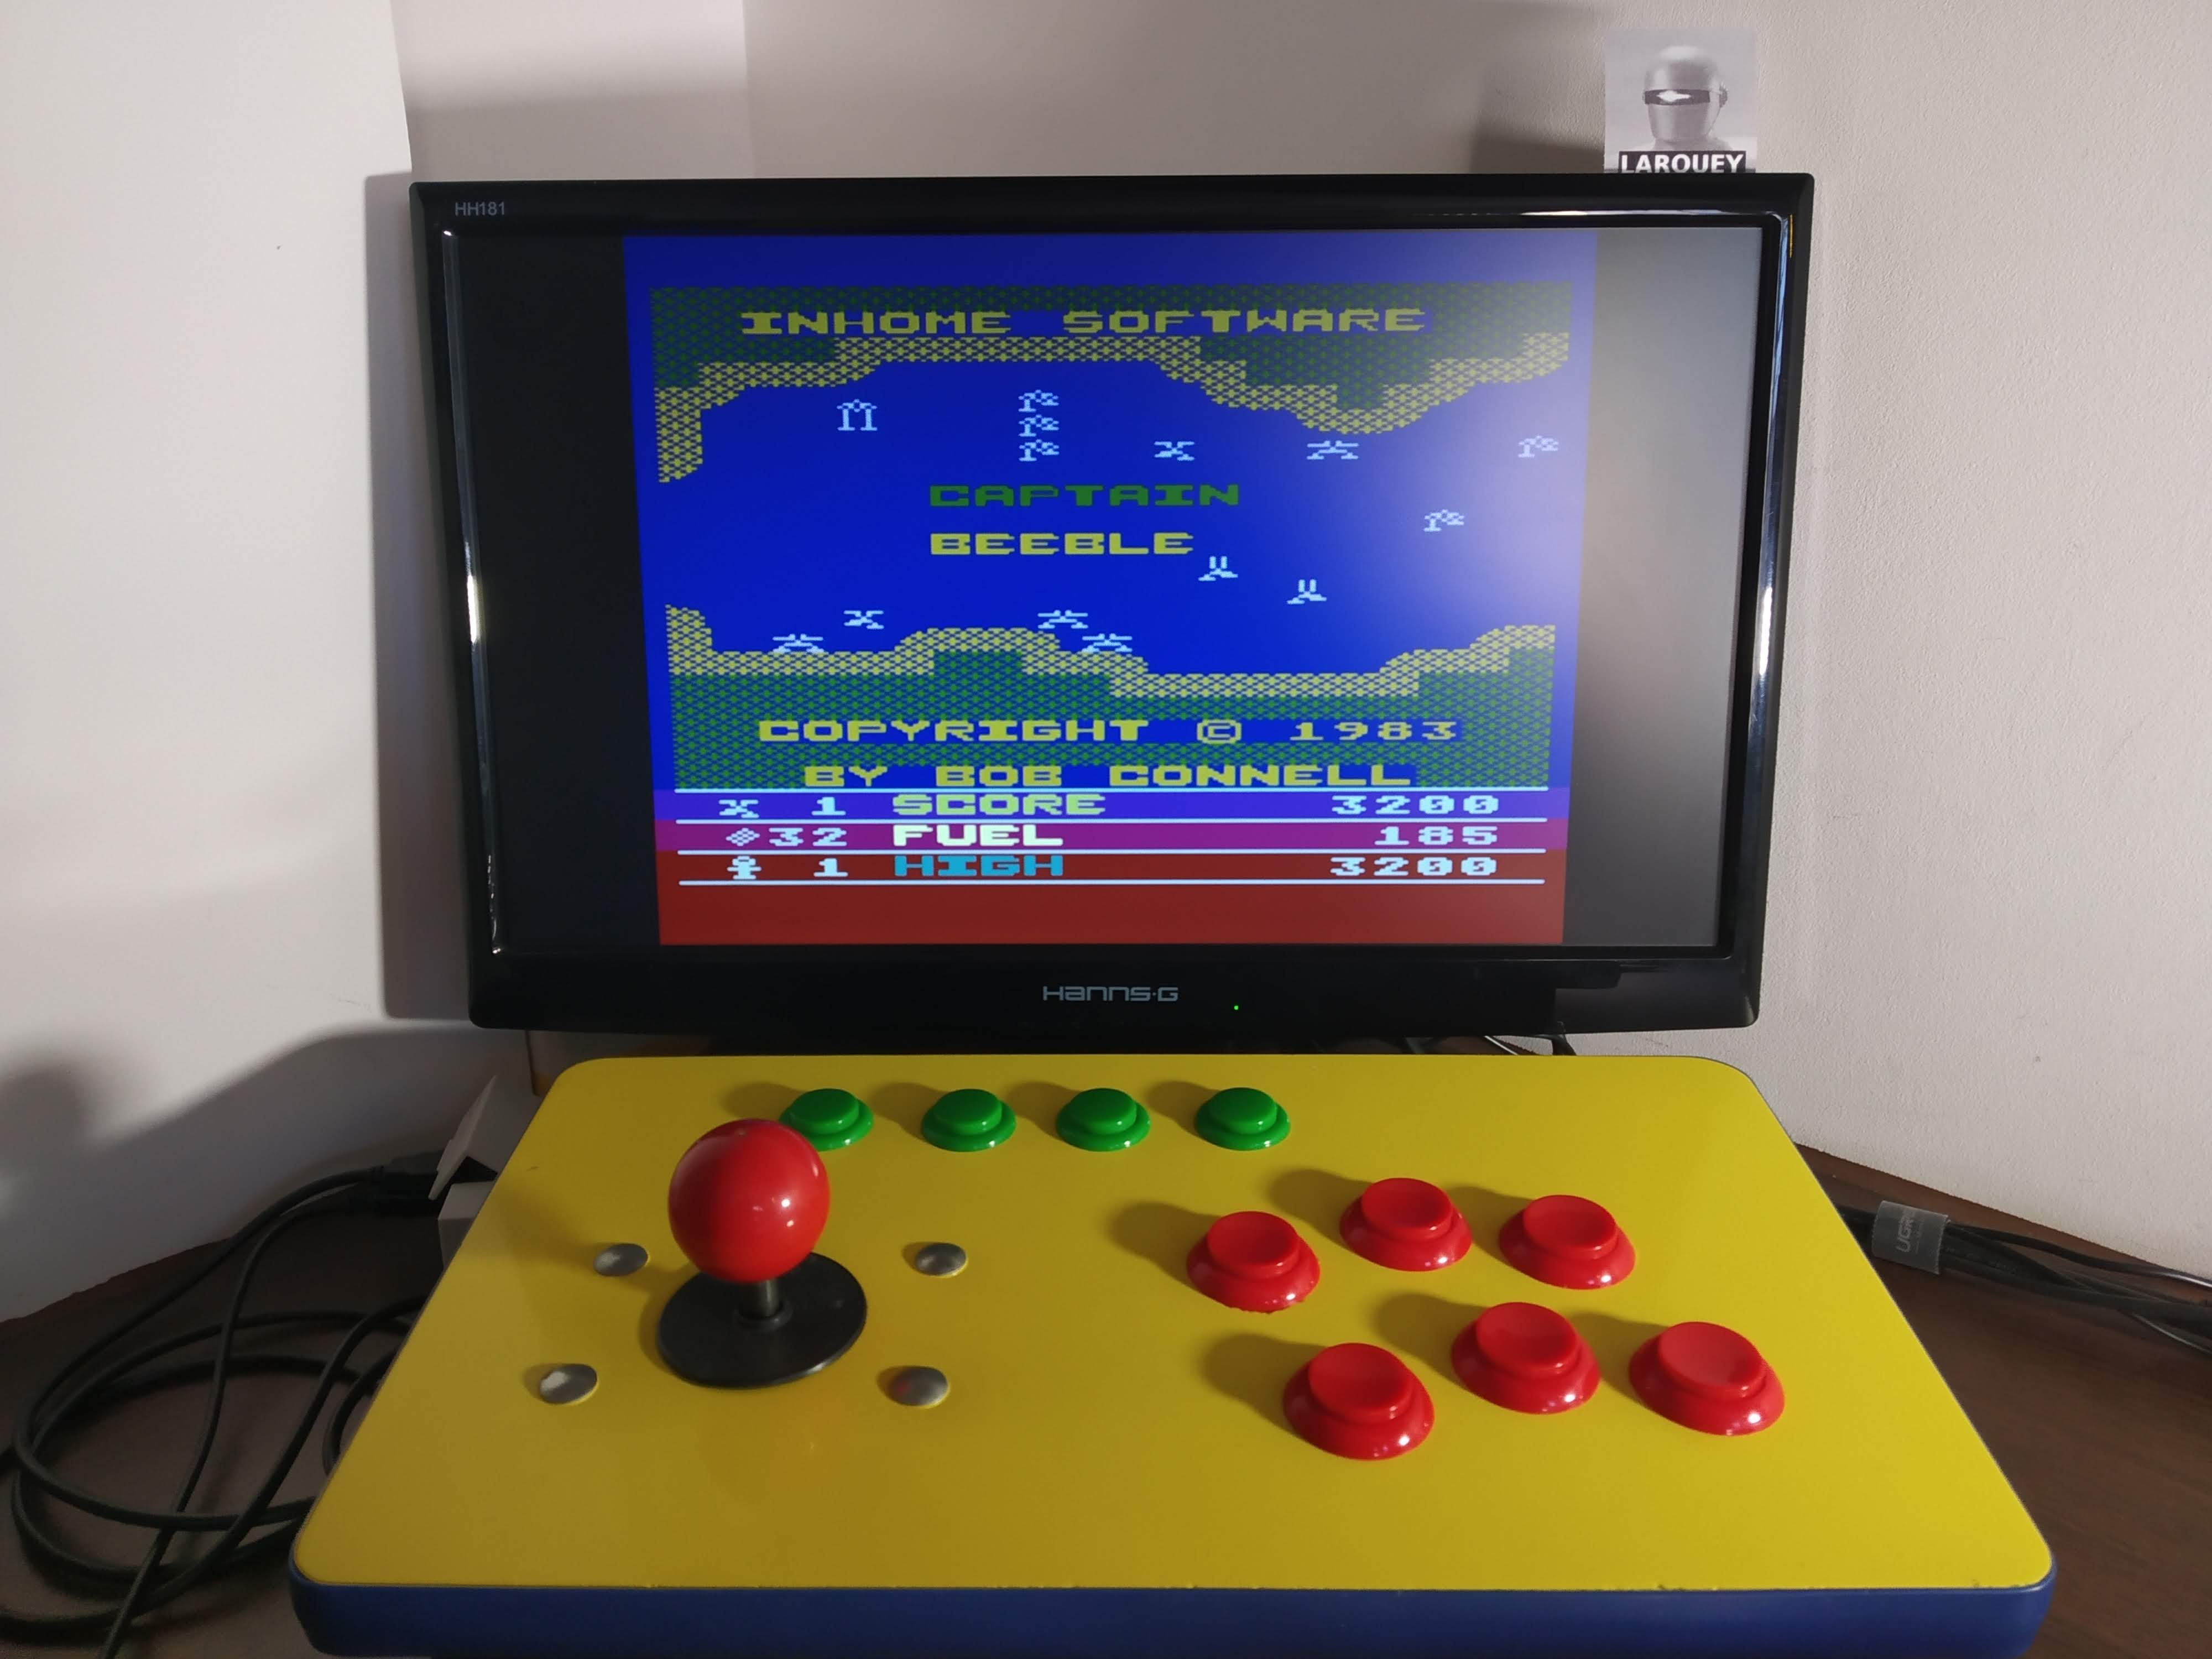 Larquey: Captain Beeble (Atari 400/800/XL/XE Emulated) 3,200 points on 2020-01-01 09:45:35